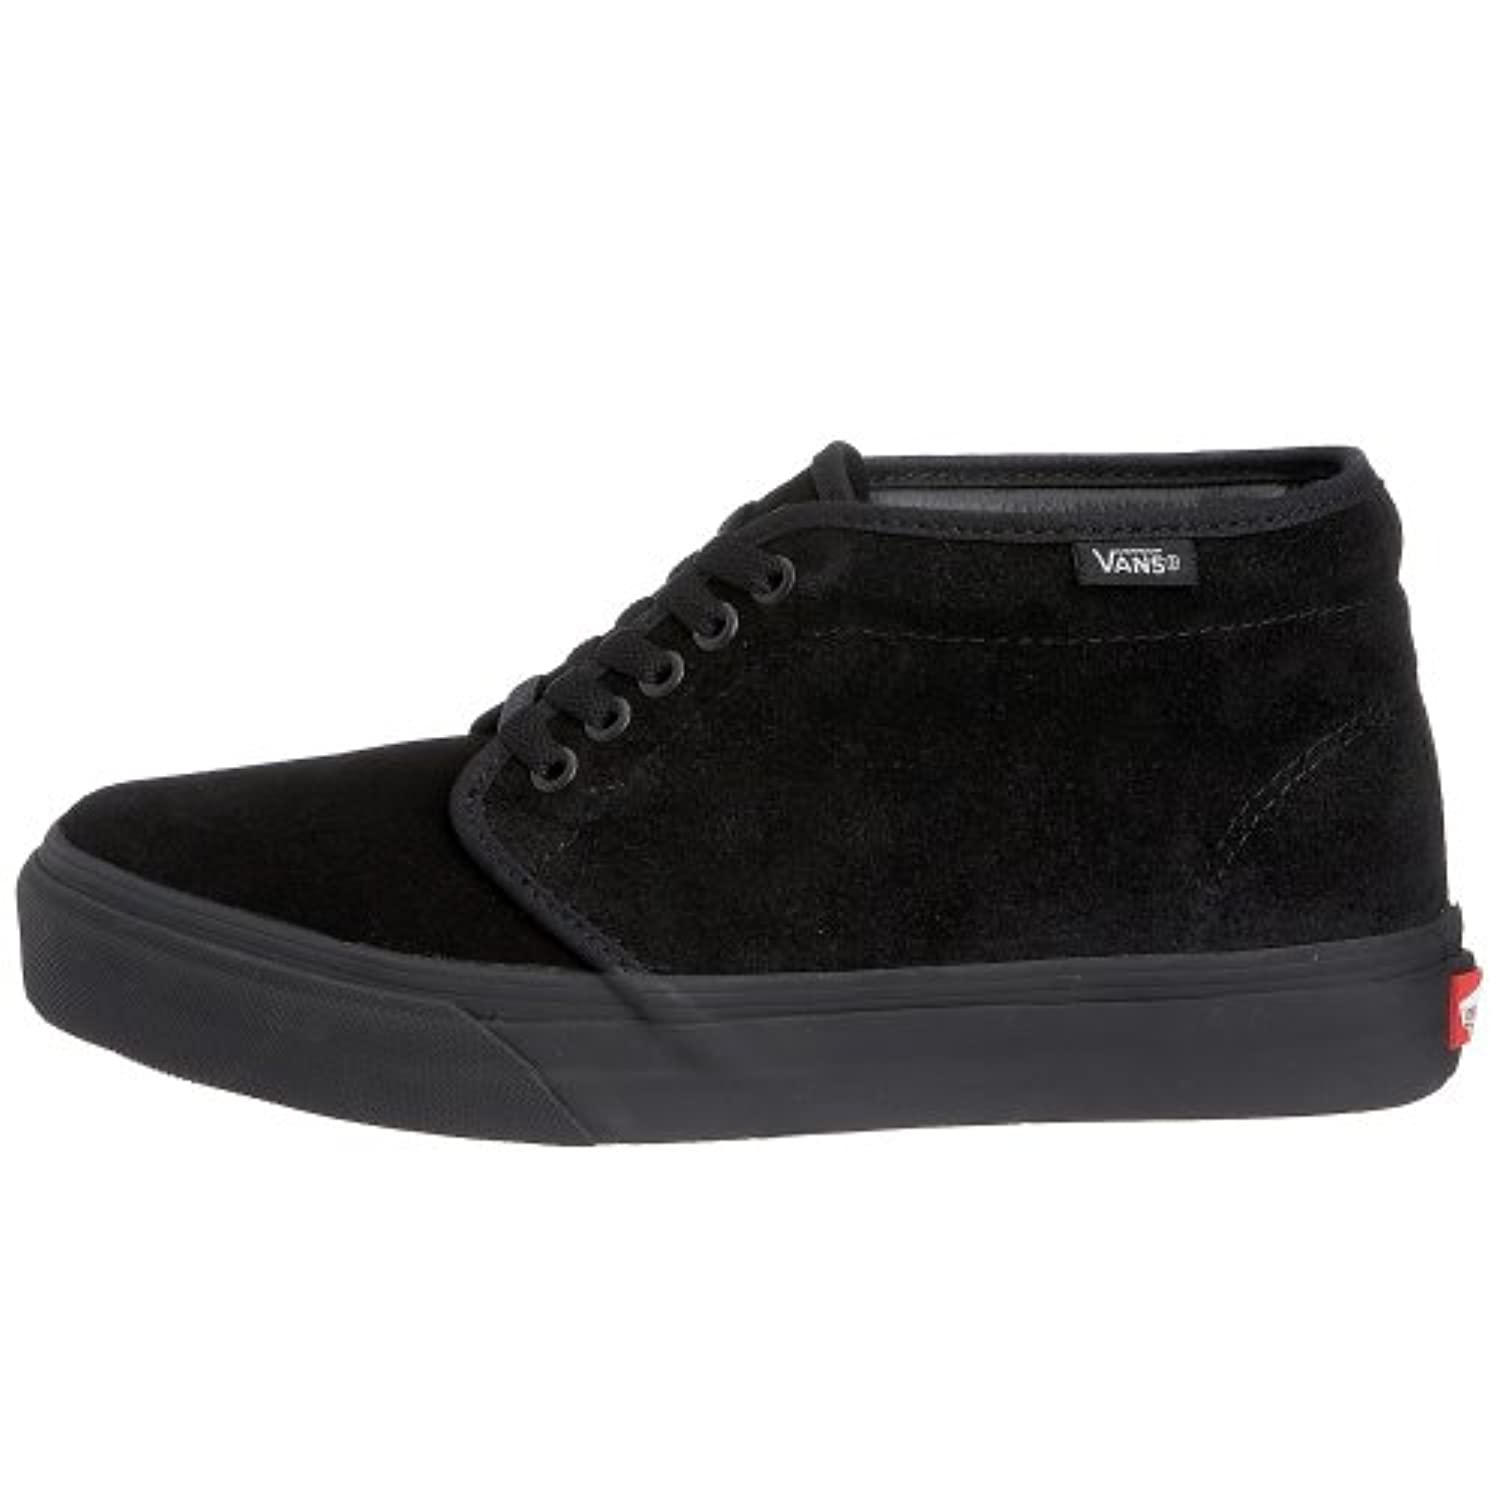 Vans Unisex-Adult Chukka Boot Trainers, Black/Black, 4.5 UK